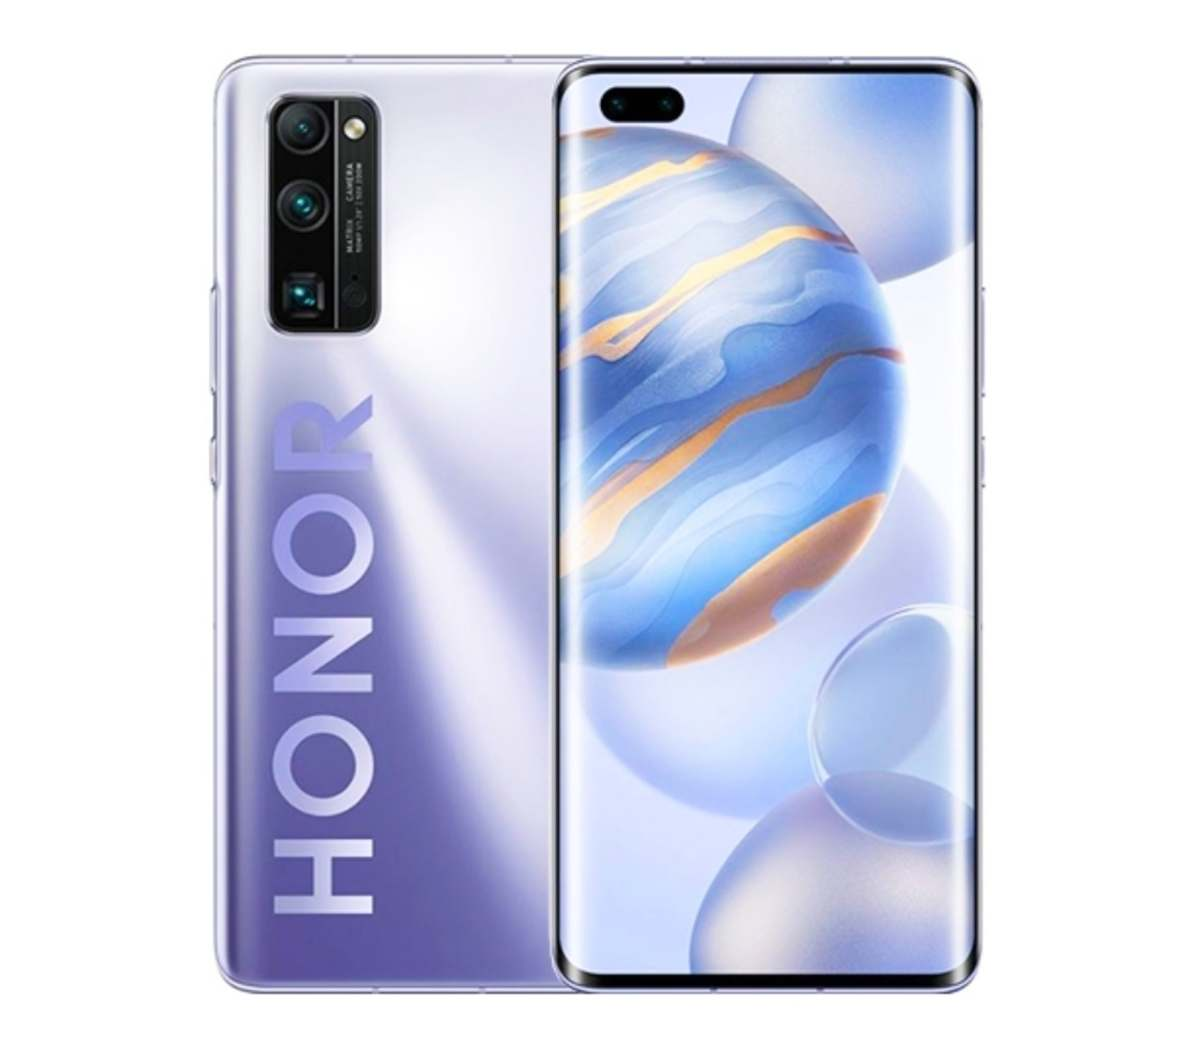 Honor 30 Pro plus price in Nigeria, Honor 30 Pro plus, Honor 30 pro plus specs and price in Nigeria, price of honor 30 pro plus in Nigeria, honor 30 pro plus specs, honor 30 pro plus price, how much is honor 30 pro plus in Nigeria, Honor 30 pro plus in Nigeria